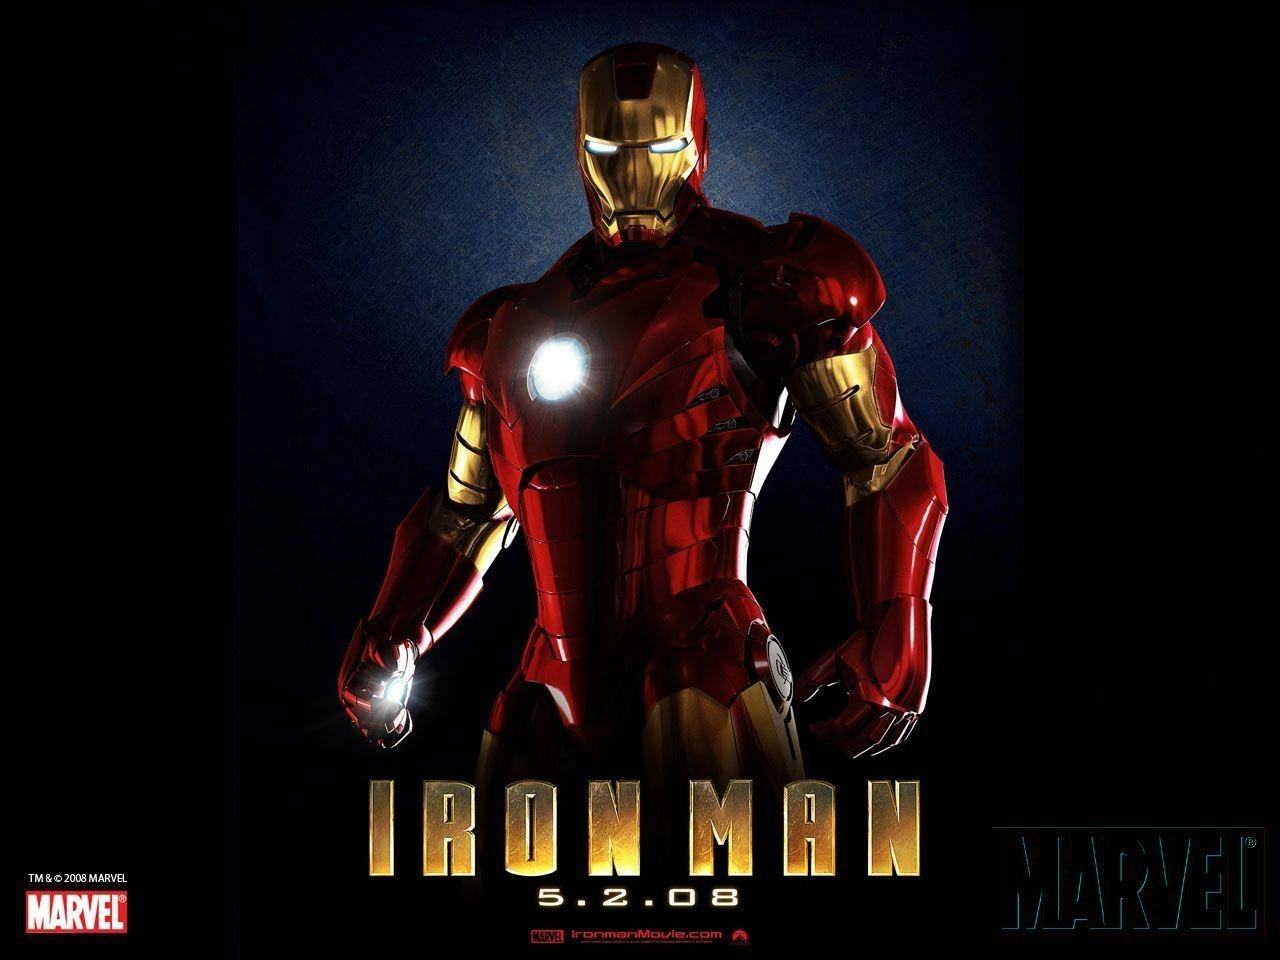 iron man movie wallpapers - wallpaper cave